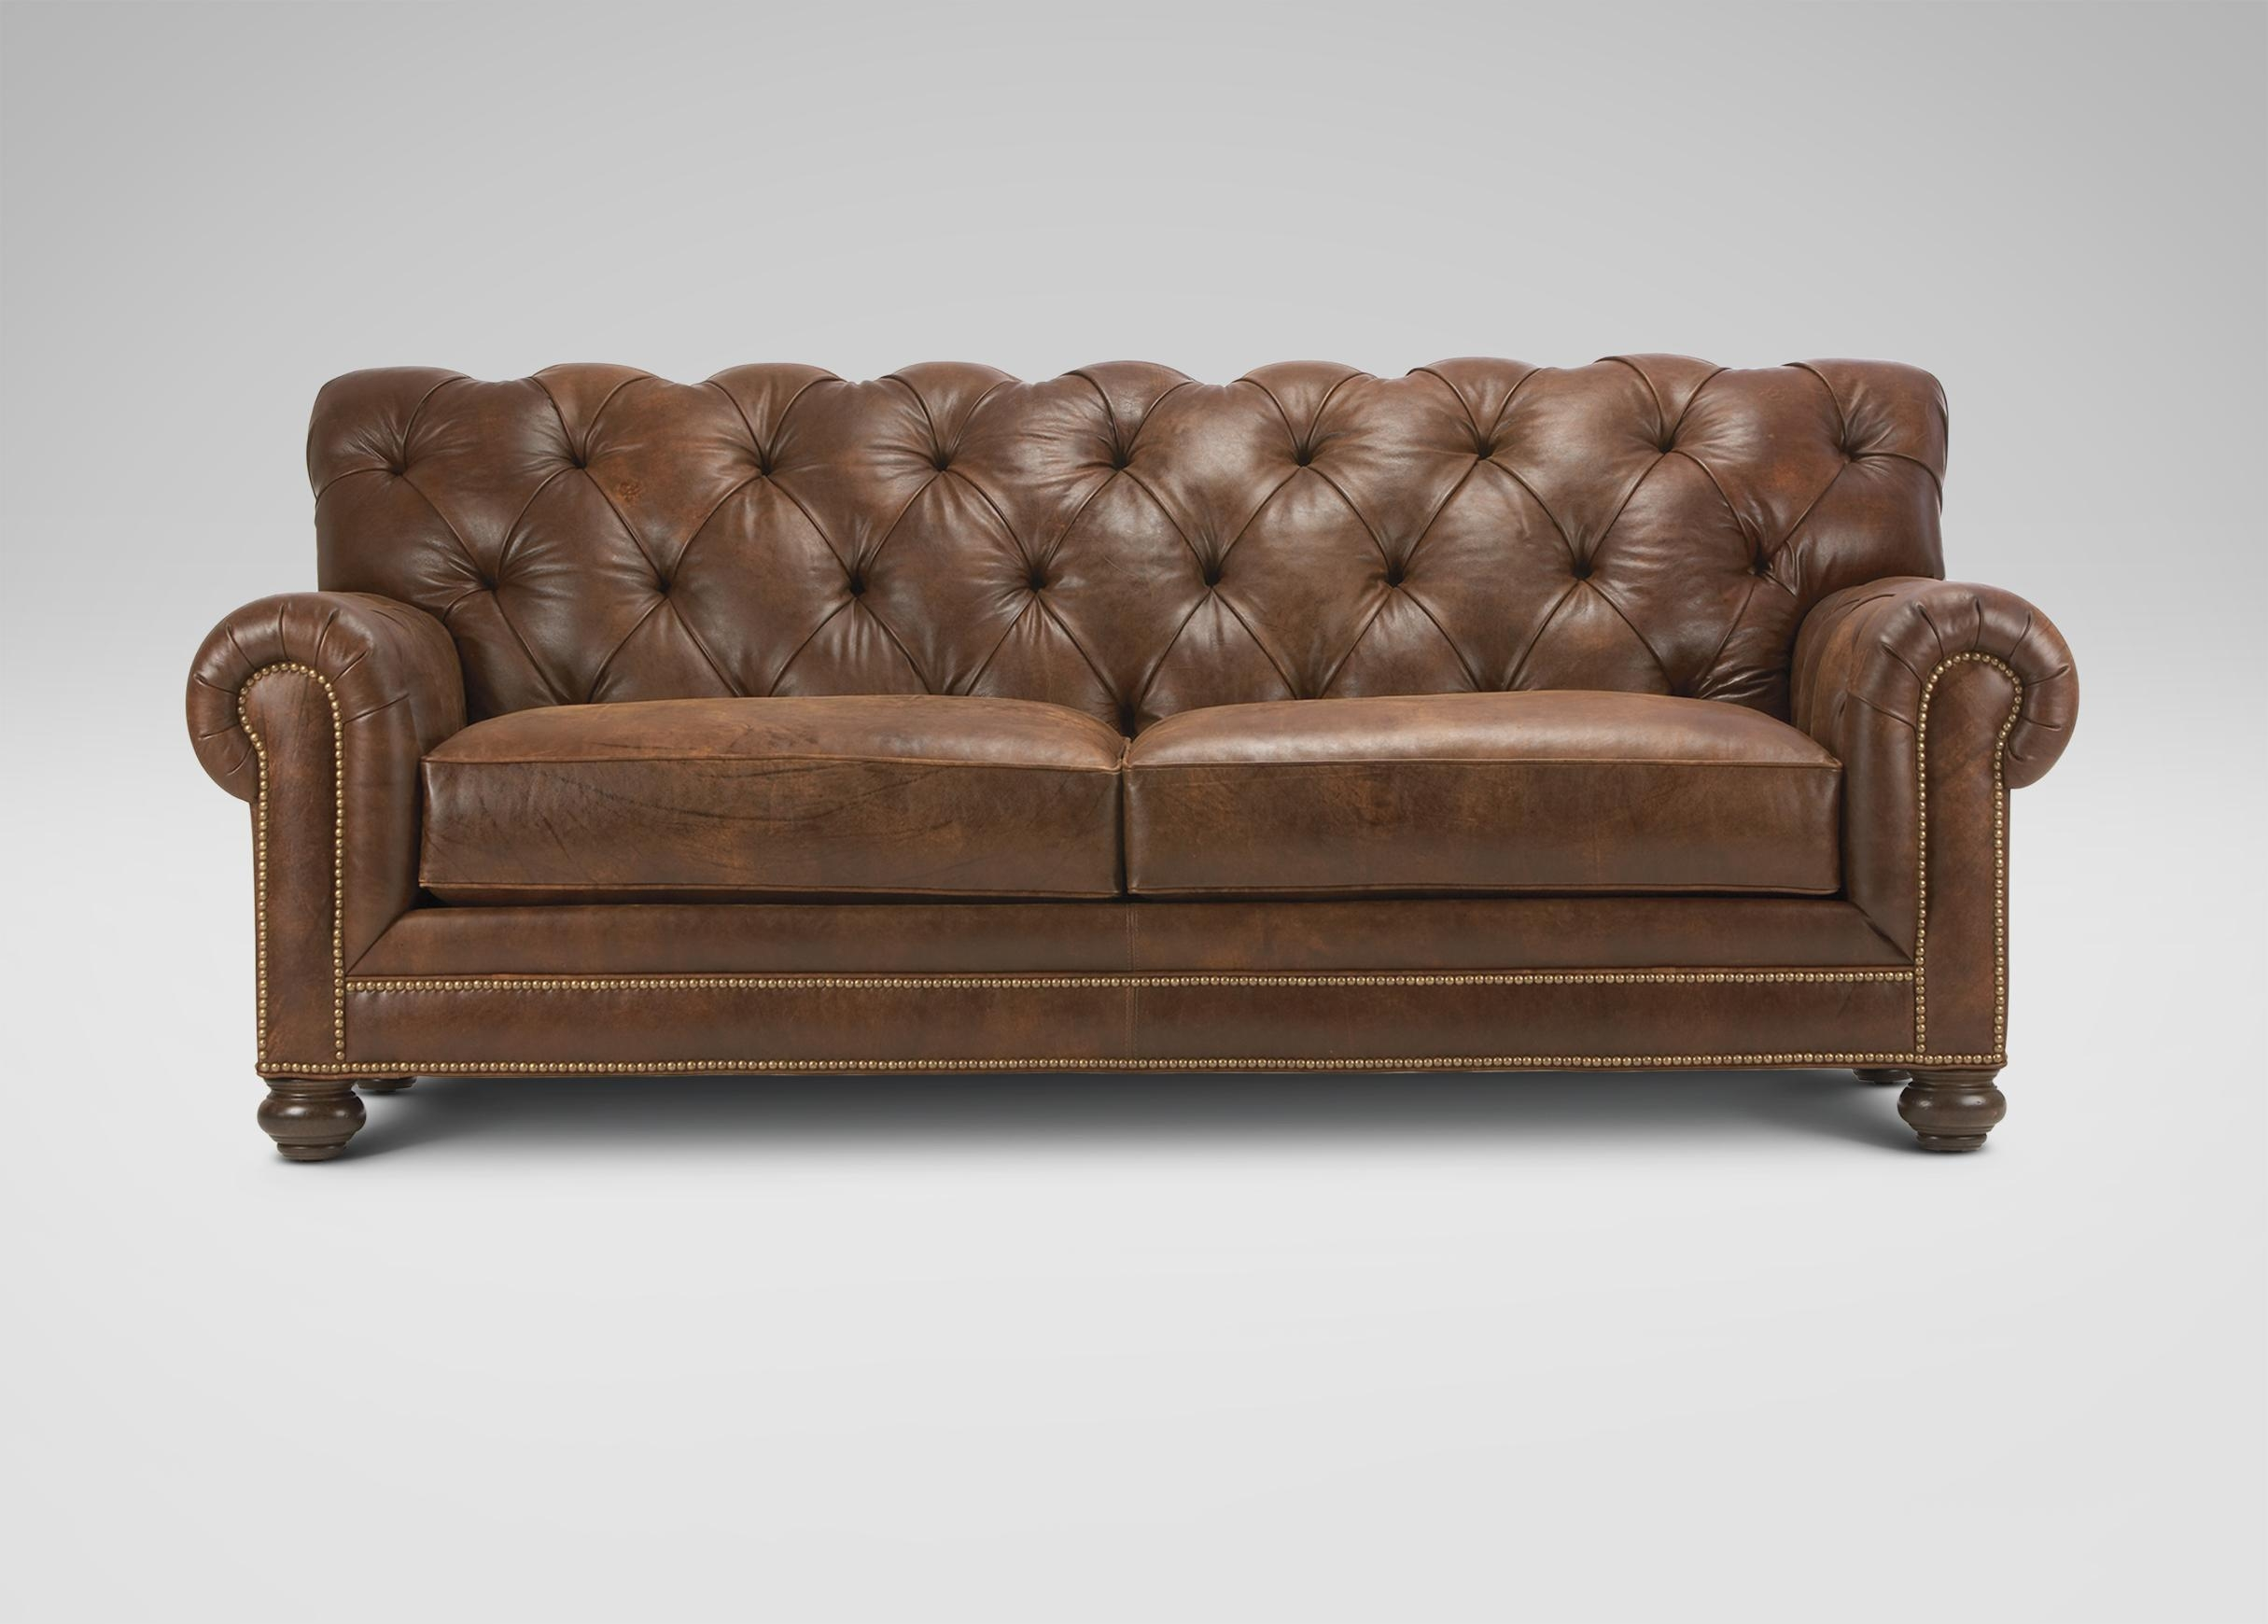 Chadwick Leather Sofa | Sofas & Loveseats Intended For Ethan Allen Chesterfield Sofas (Image 2 of 20)